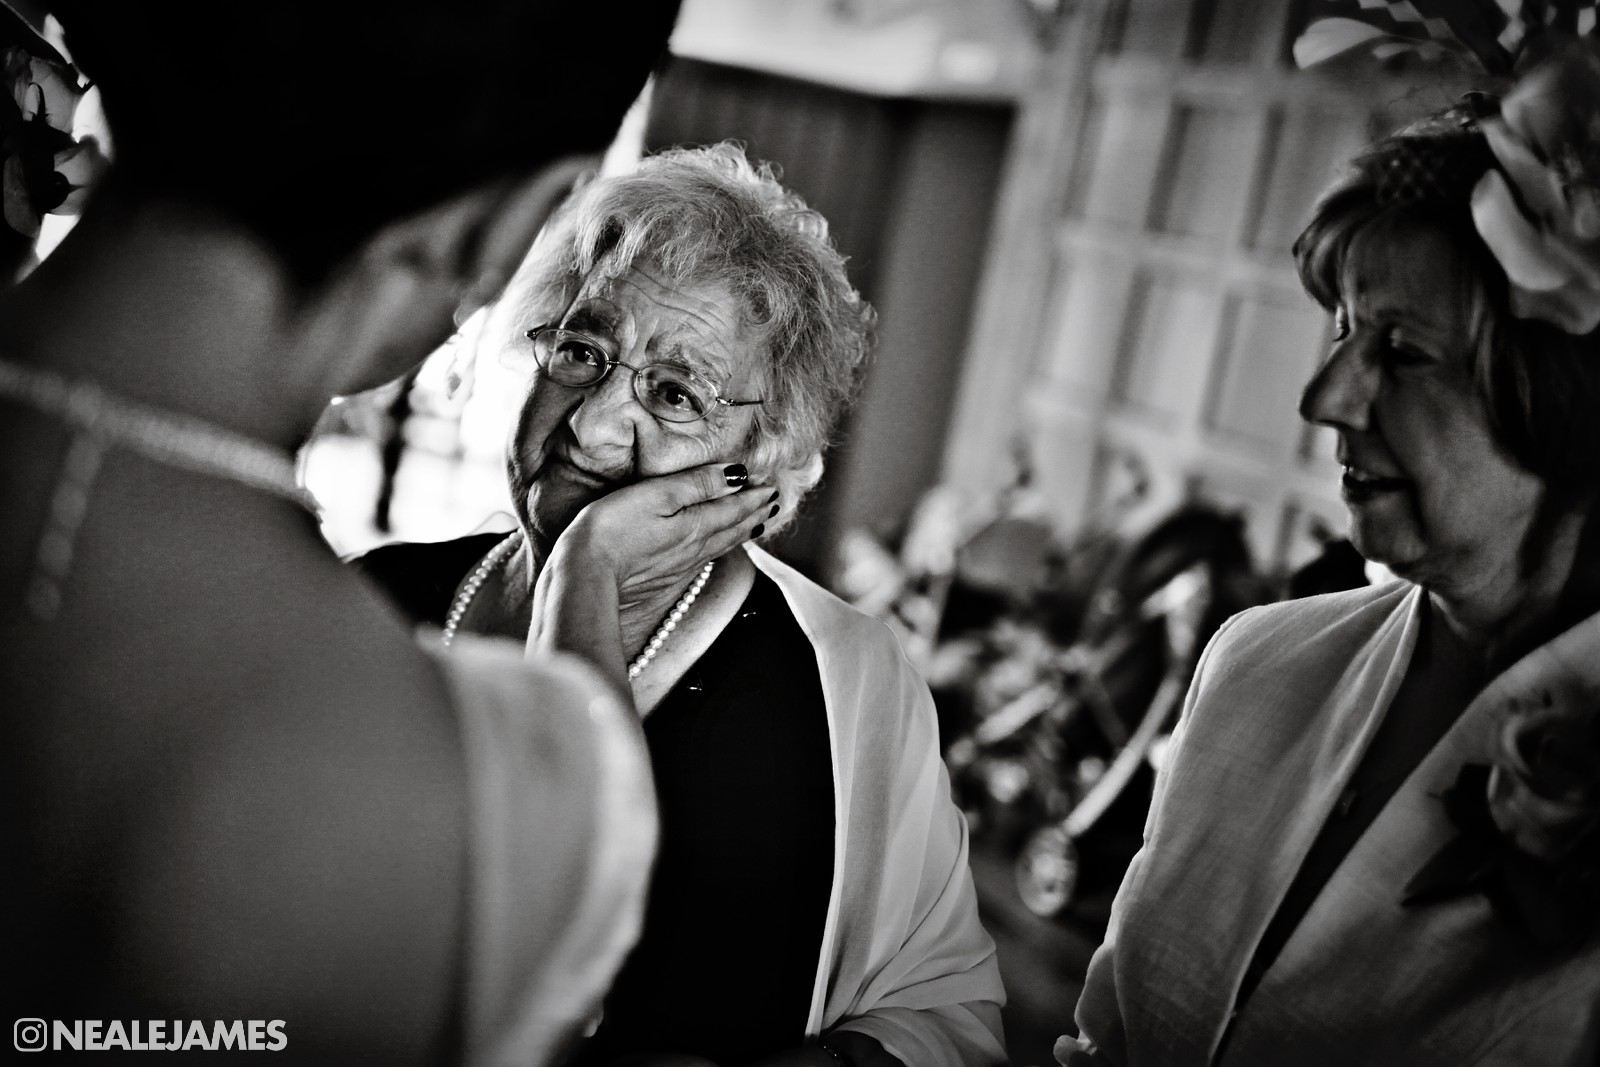 A black and white wedding photo of a mother and daughter in emotional exchange after a wedding